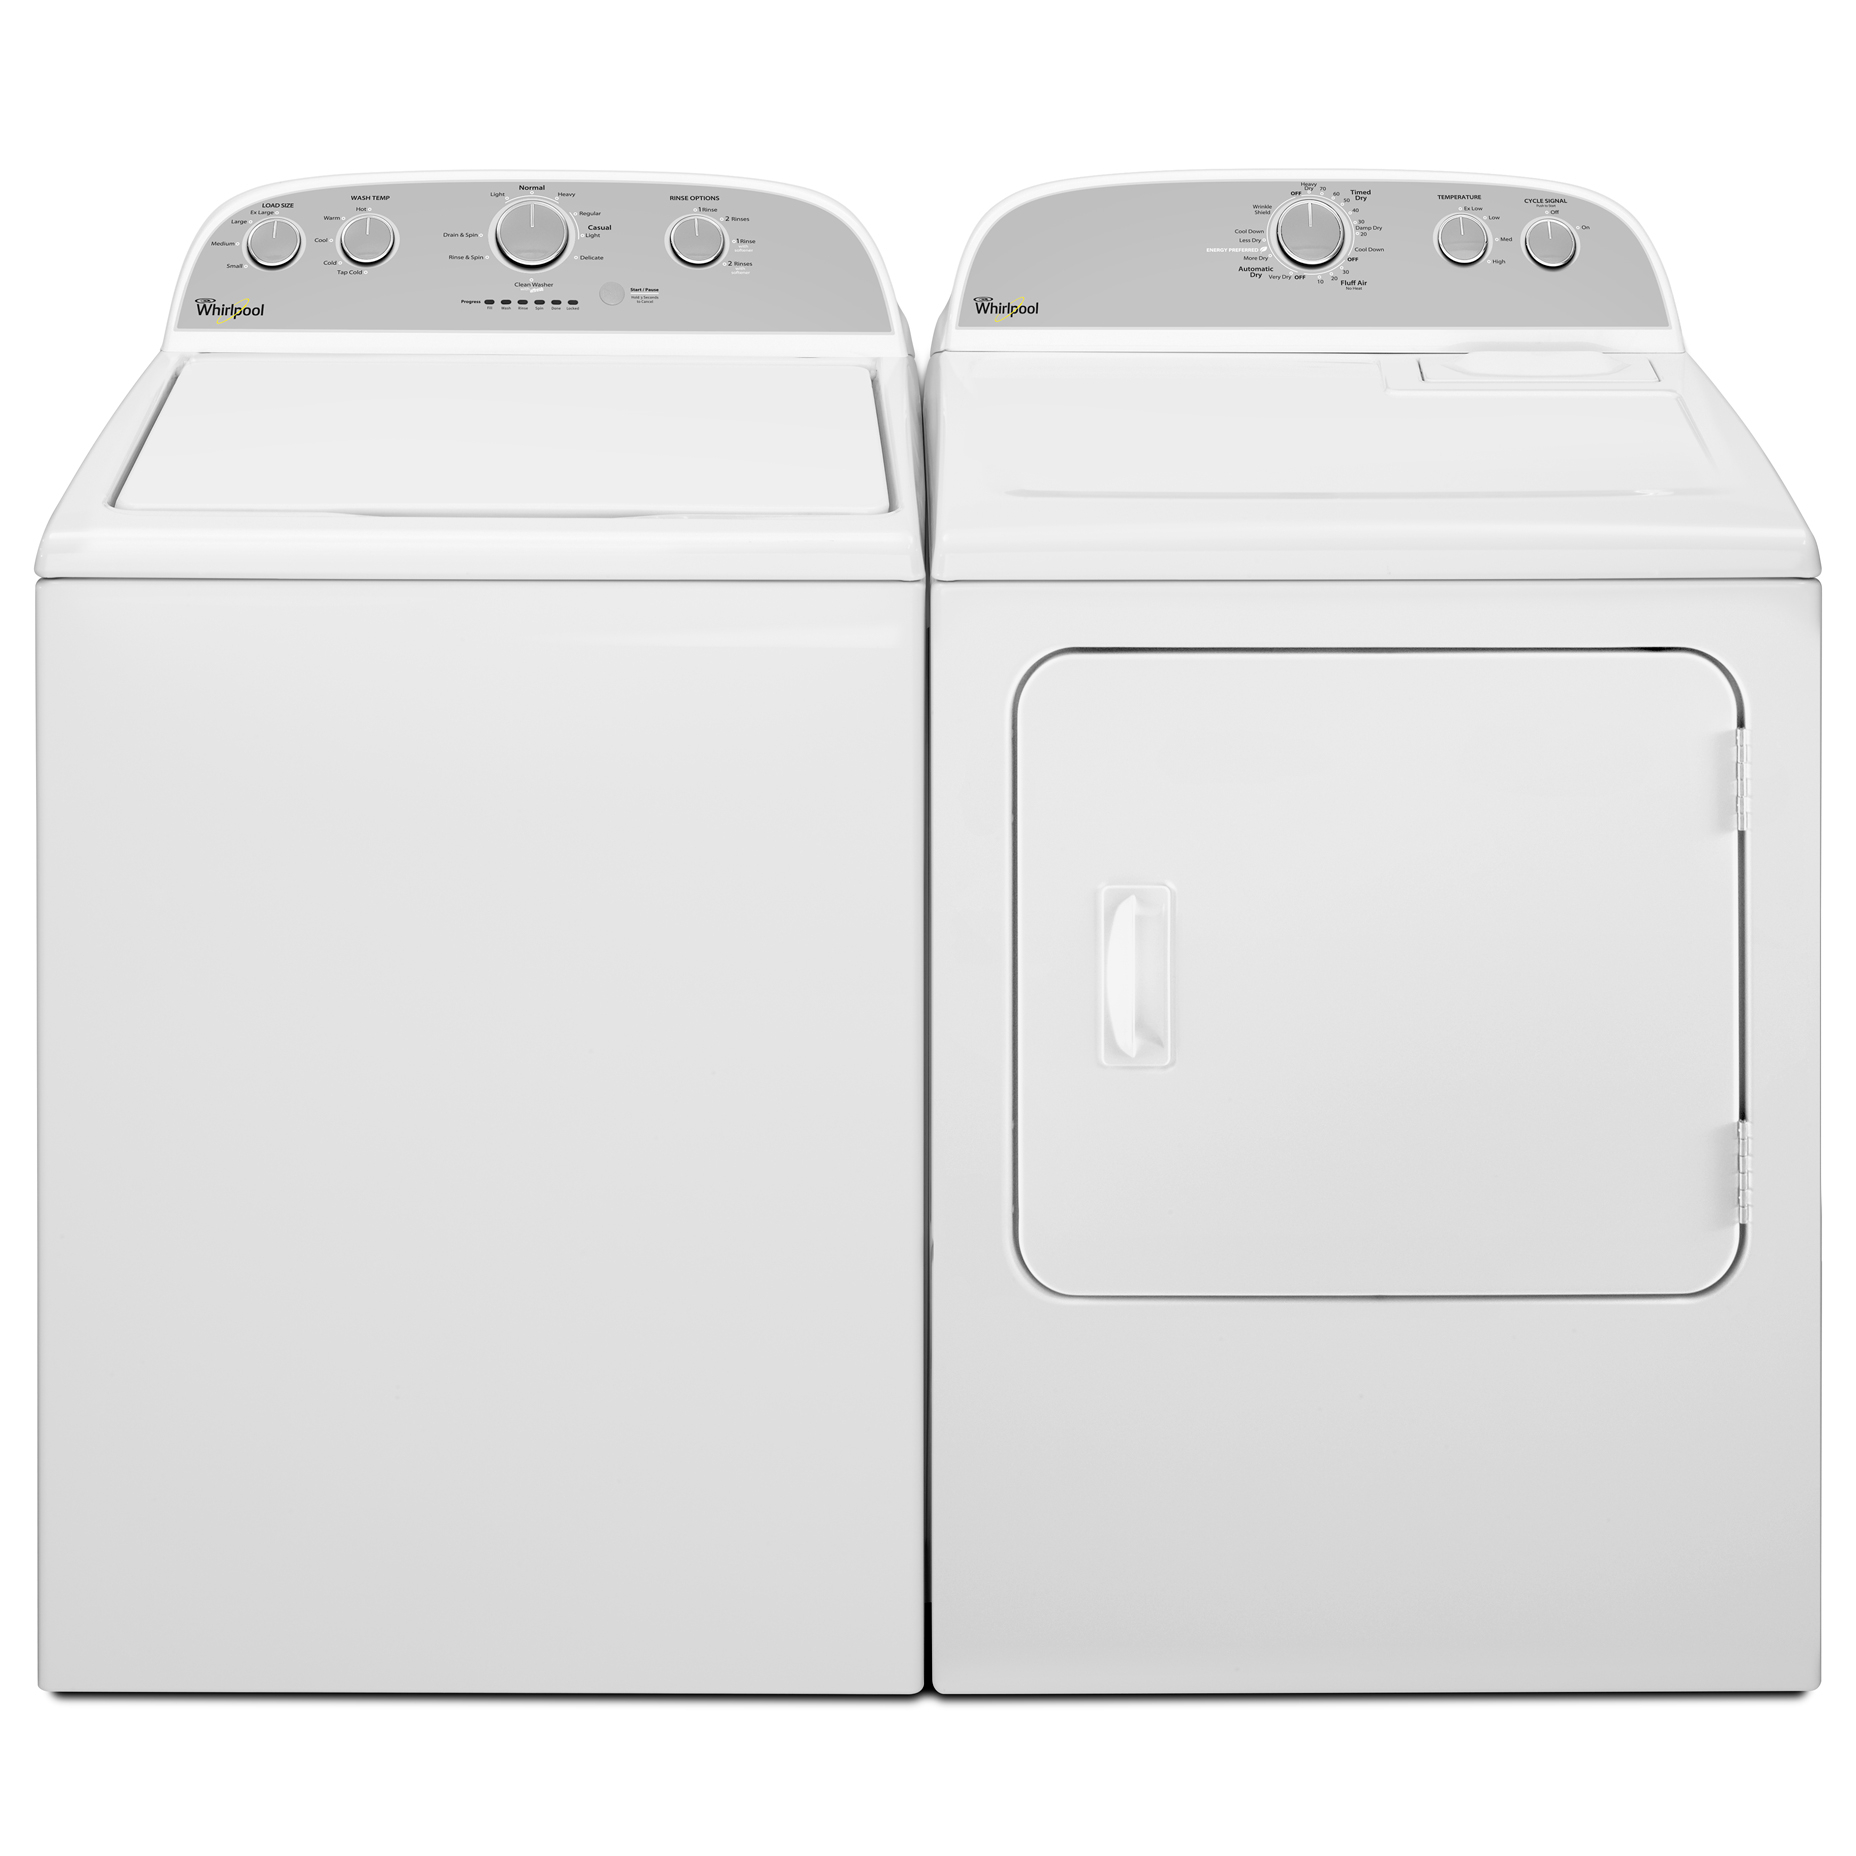 Whirlpool WTW4800BQ 3.6 cu. ft. Top-Load Washer w/ Care Control Temperature Management - White